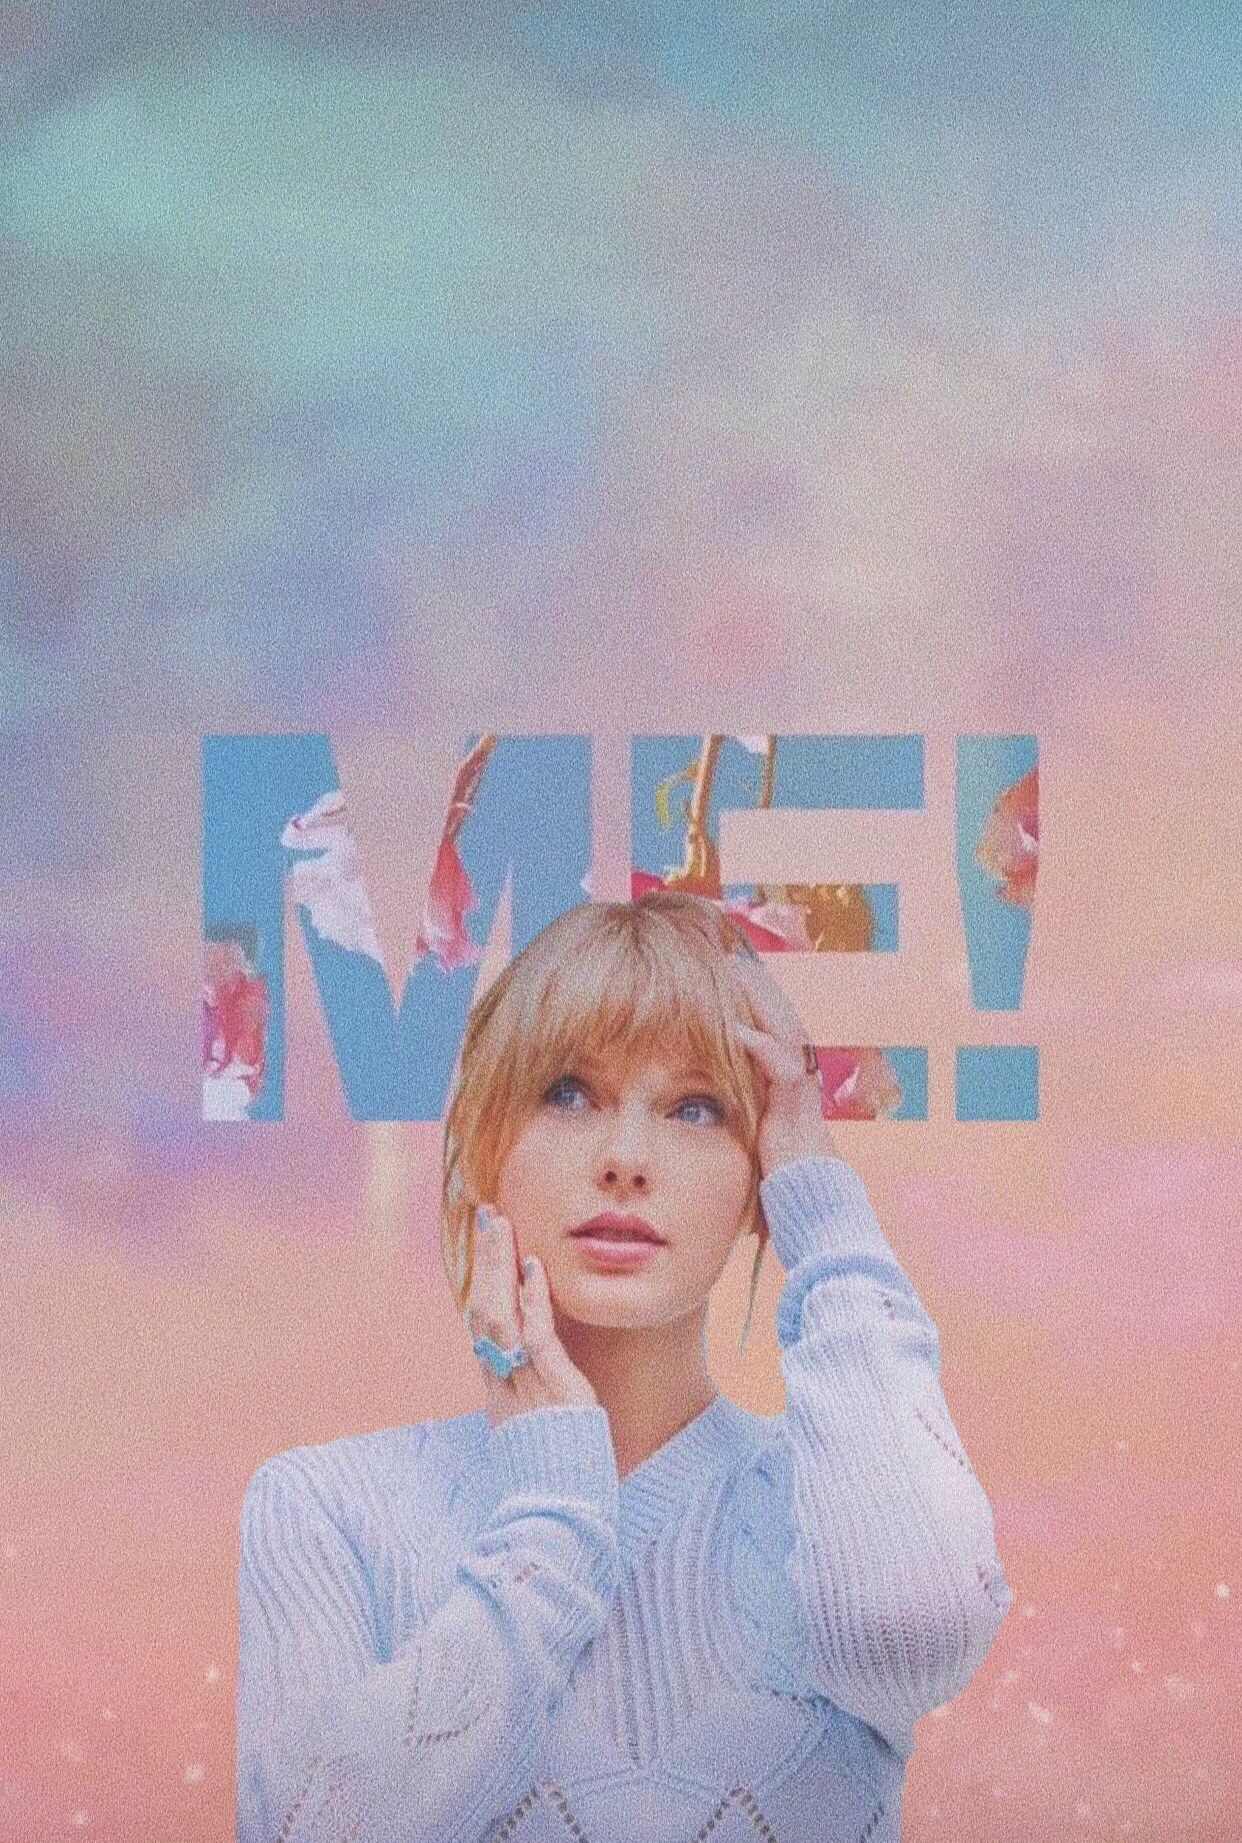 Using This As My Phone Wallpaper Love Taylor Swift Wallpaper